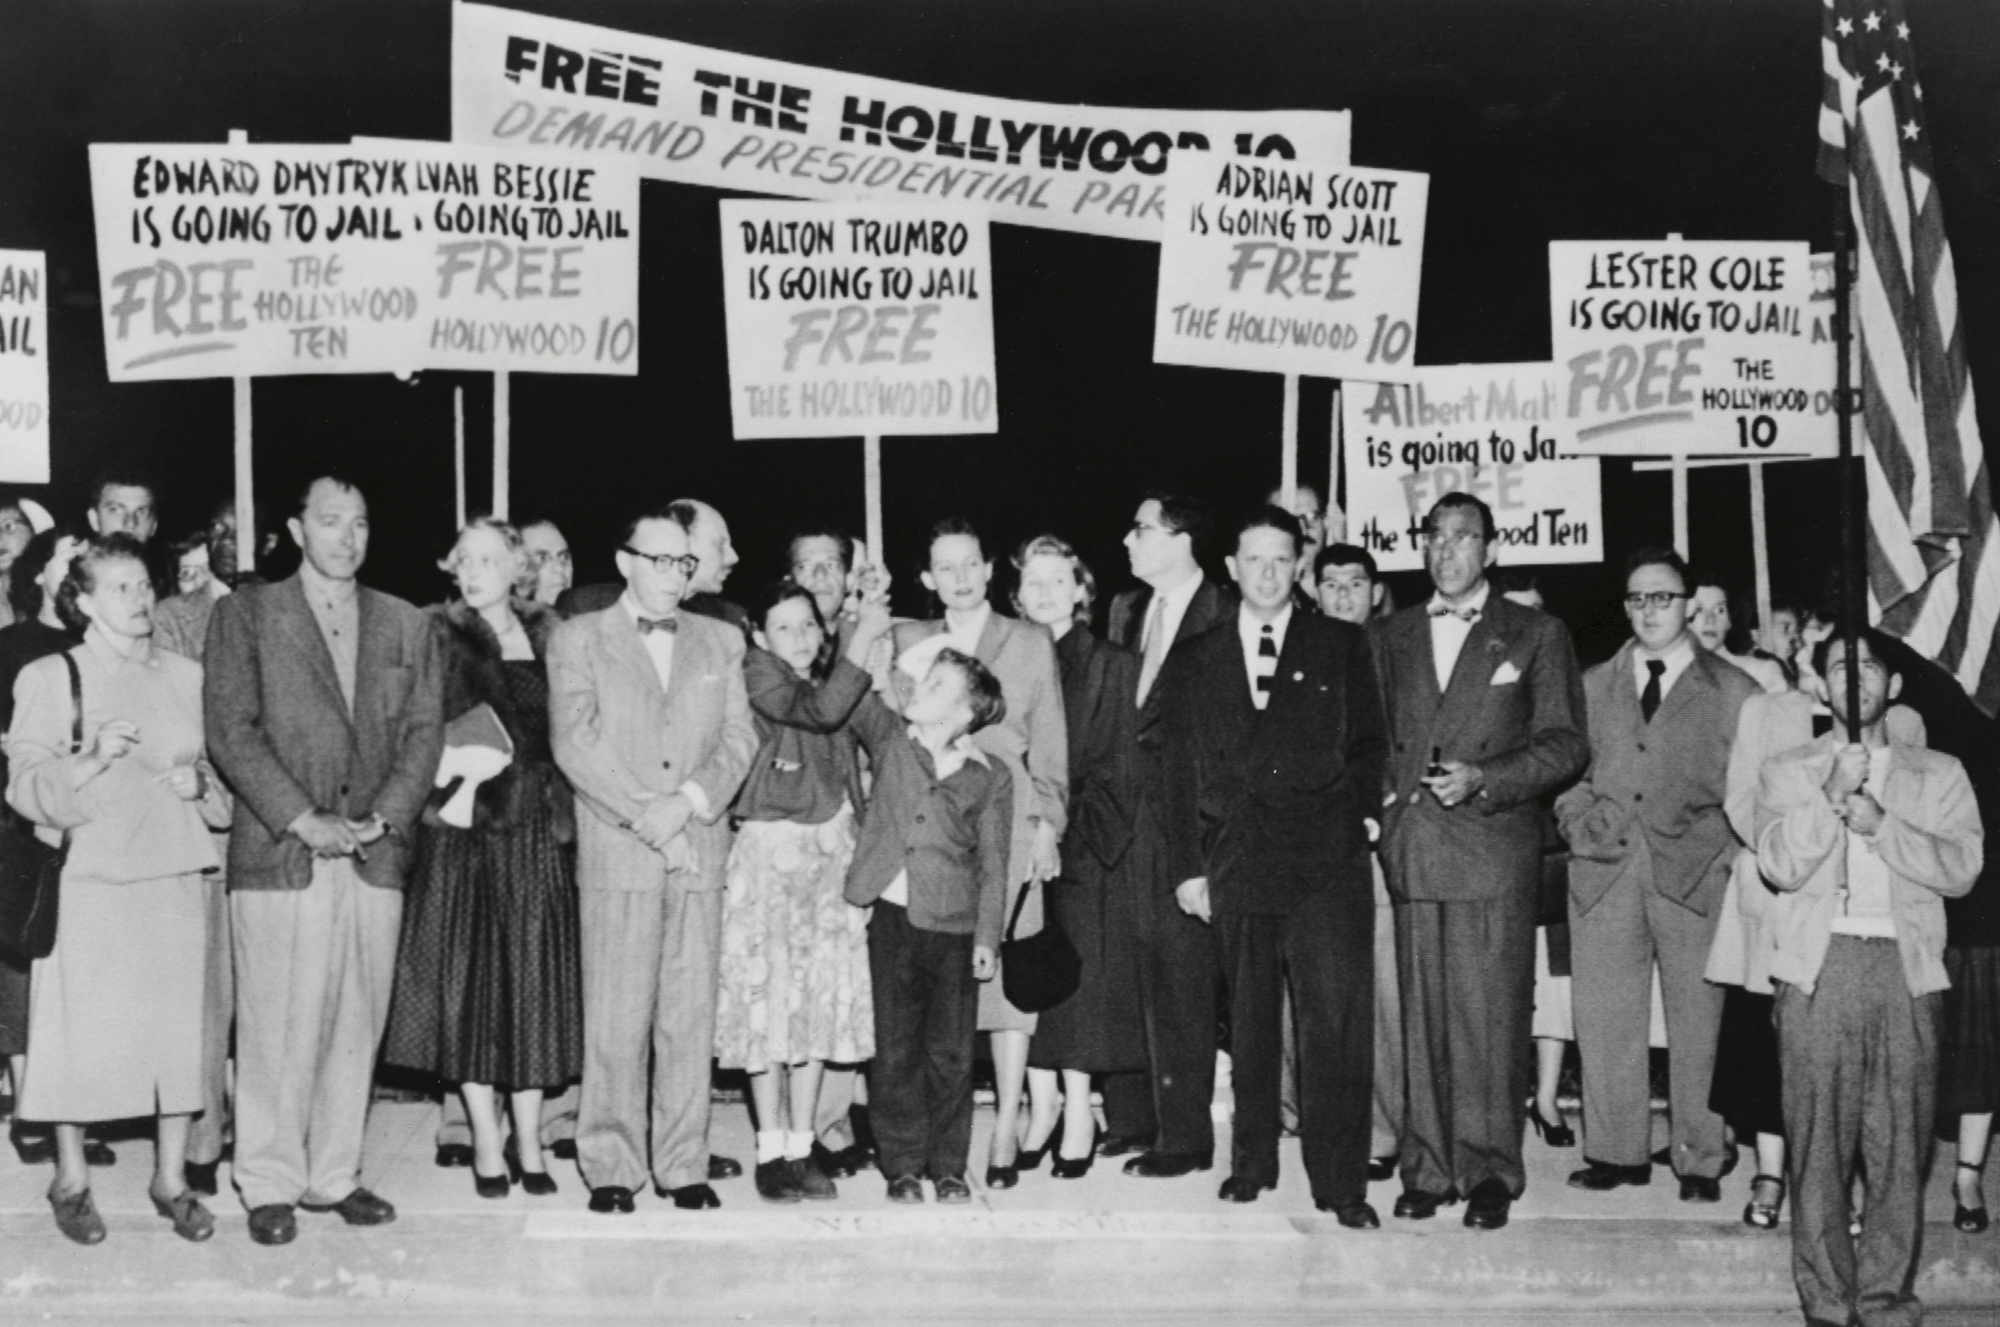 Hollywood ten supporters carrying signs in protest as Dalton Trumbo waits to board a plane on his way to federal prison for refusing to testify to the House Un-American Activities Committee. Photo via Shutterstock